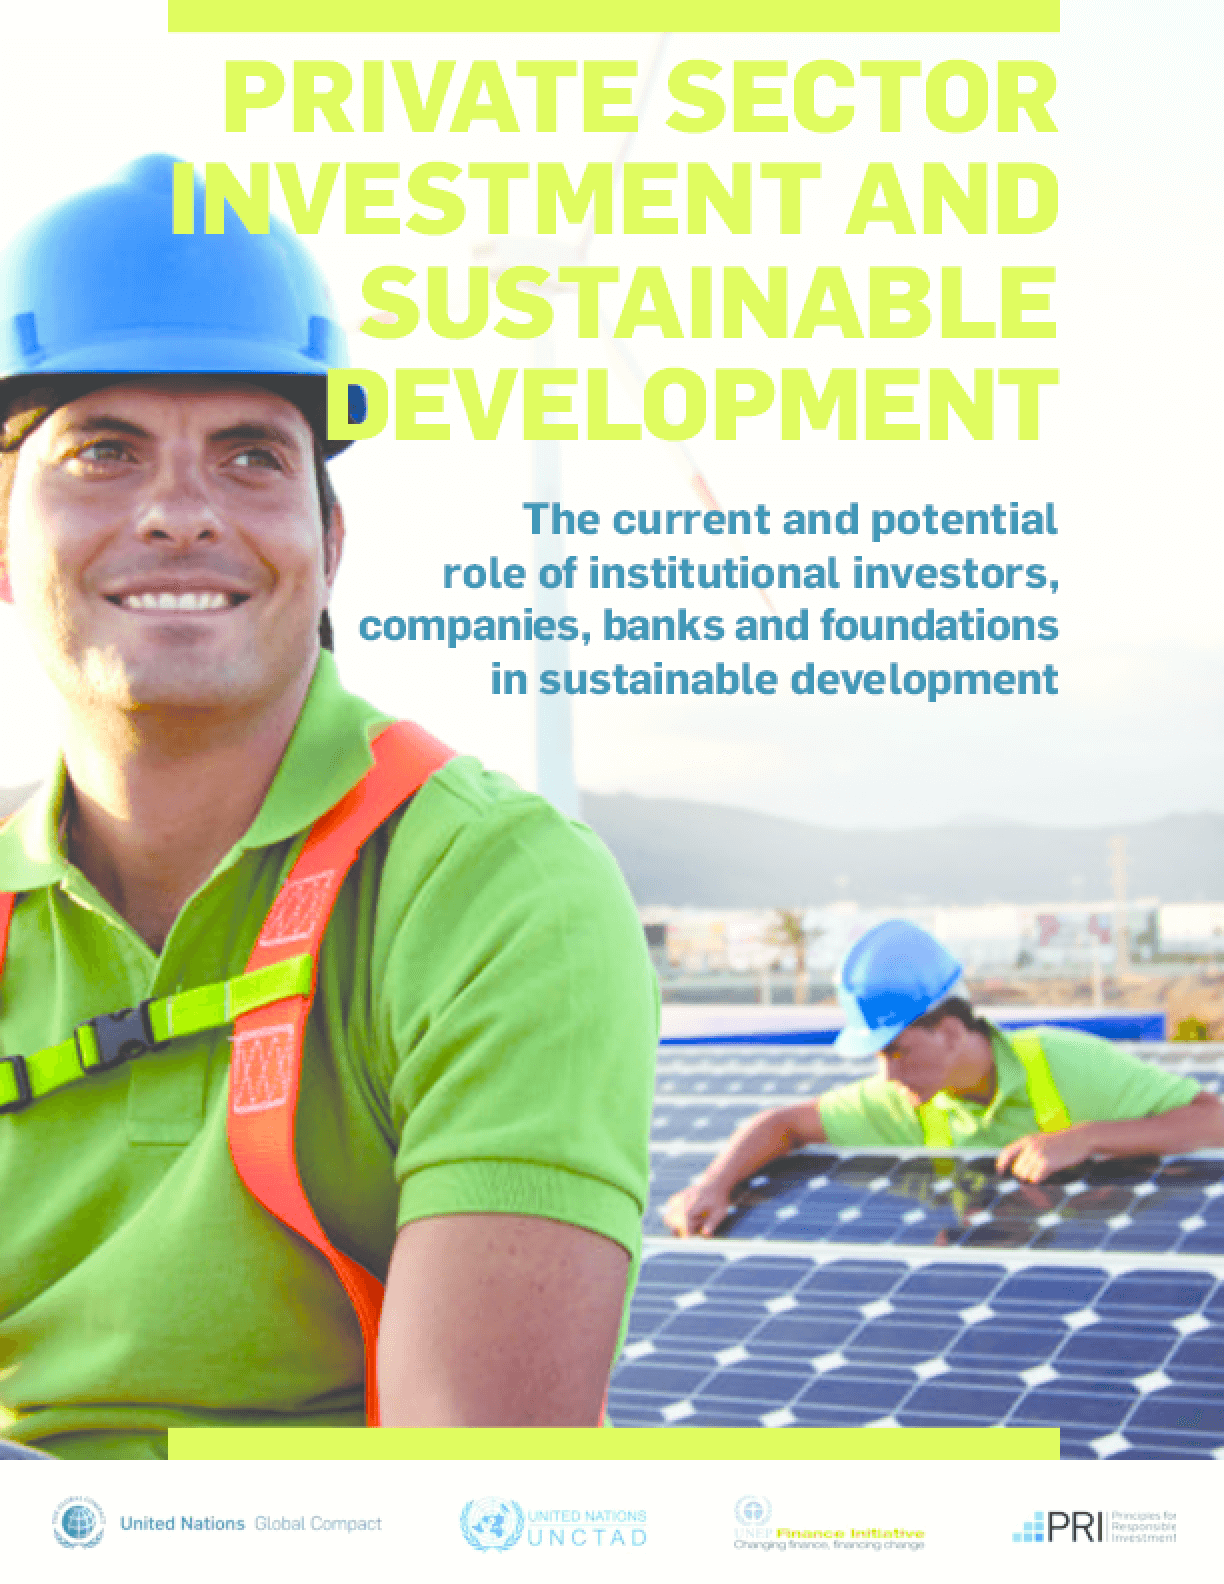 Private Sector Investment and Sustainable Development: The Current and Potential Role of Institutional Investors, Companies, Banks and Foundations in Sustainable Development